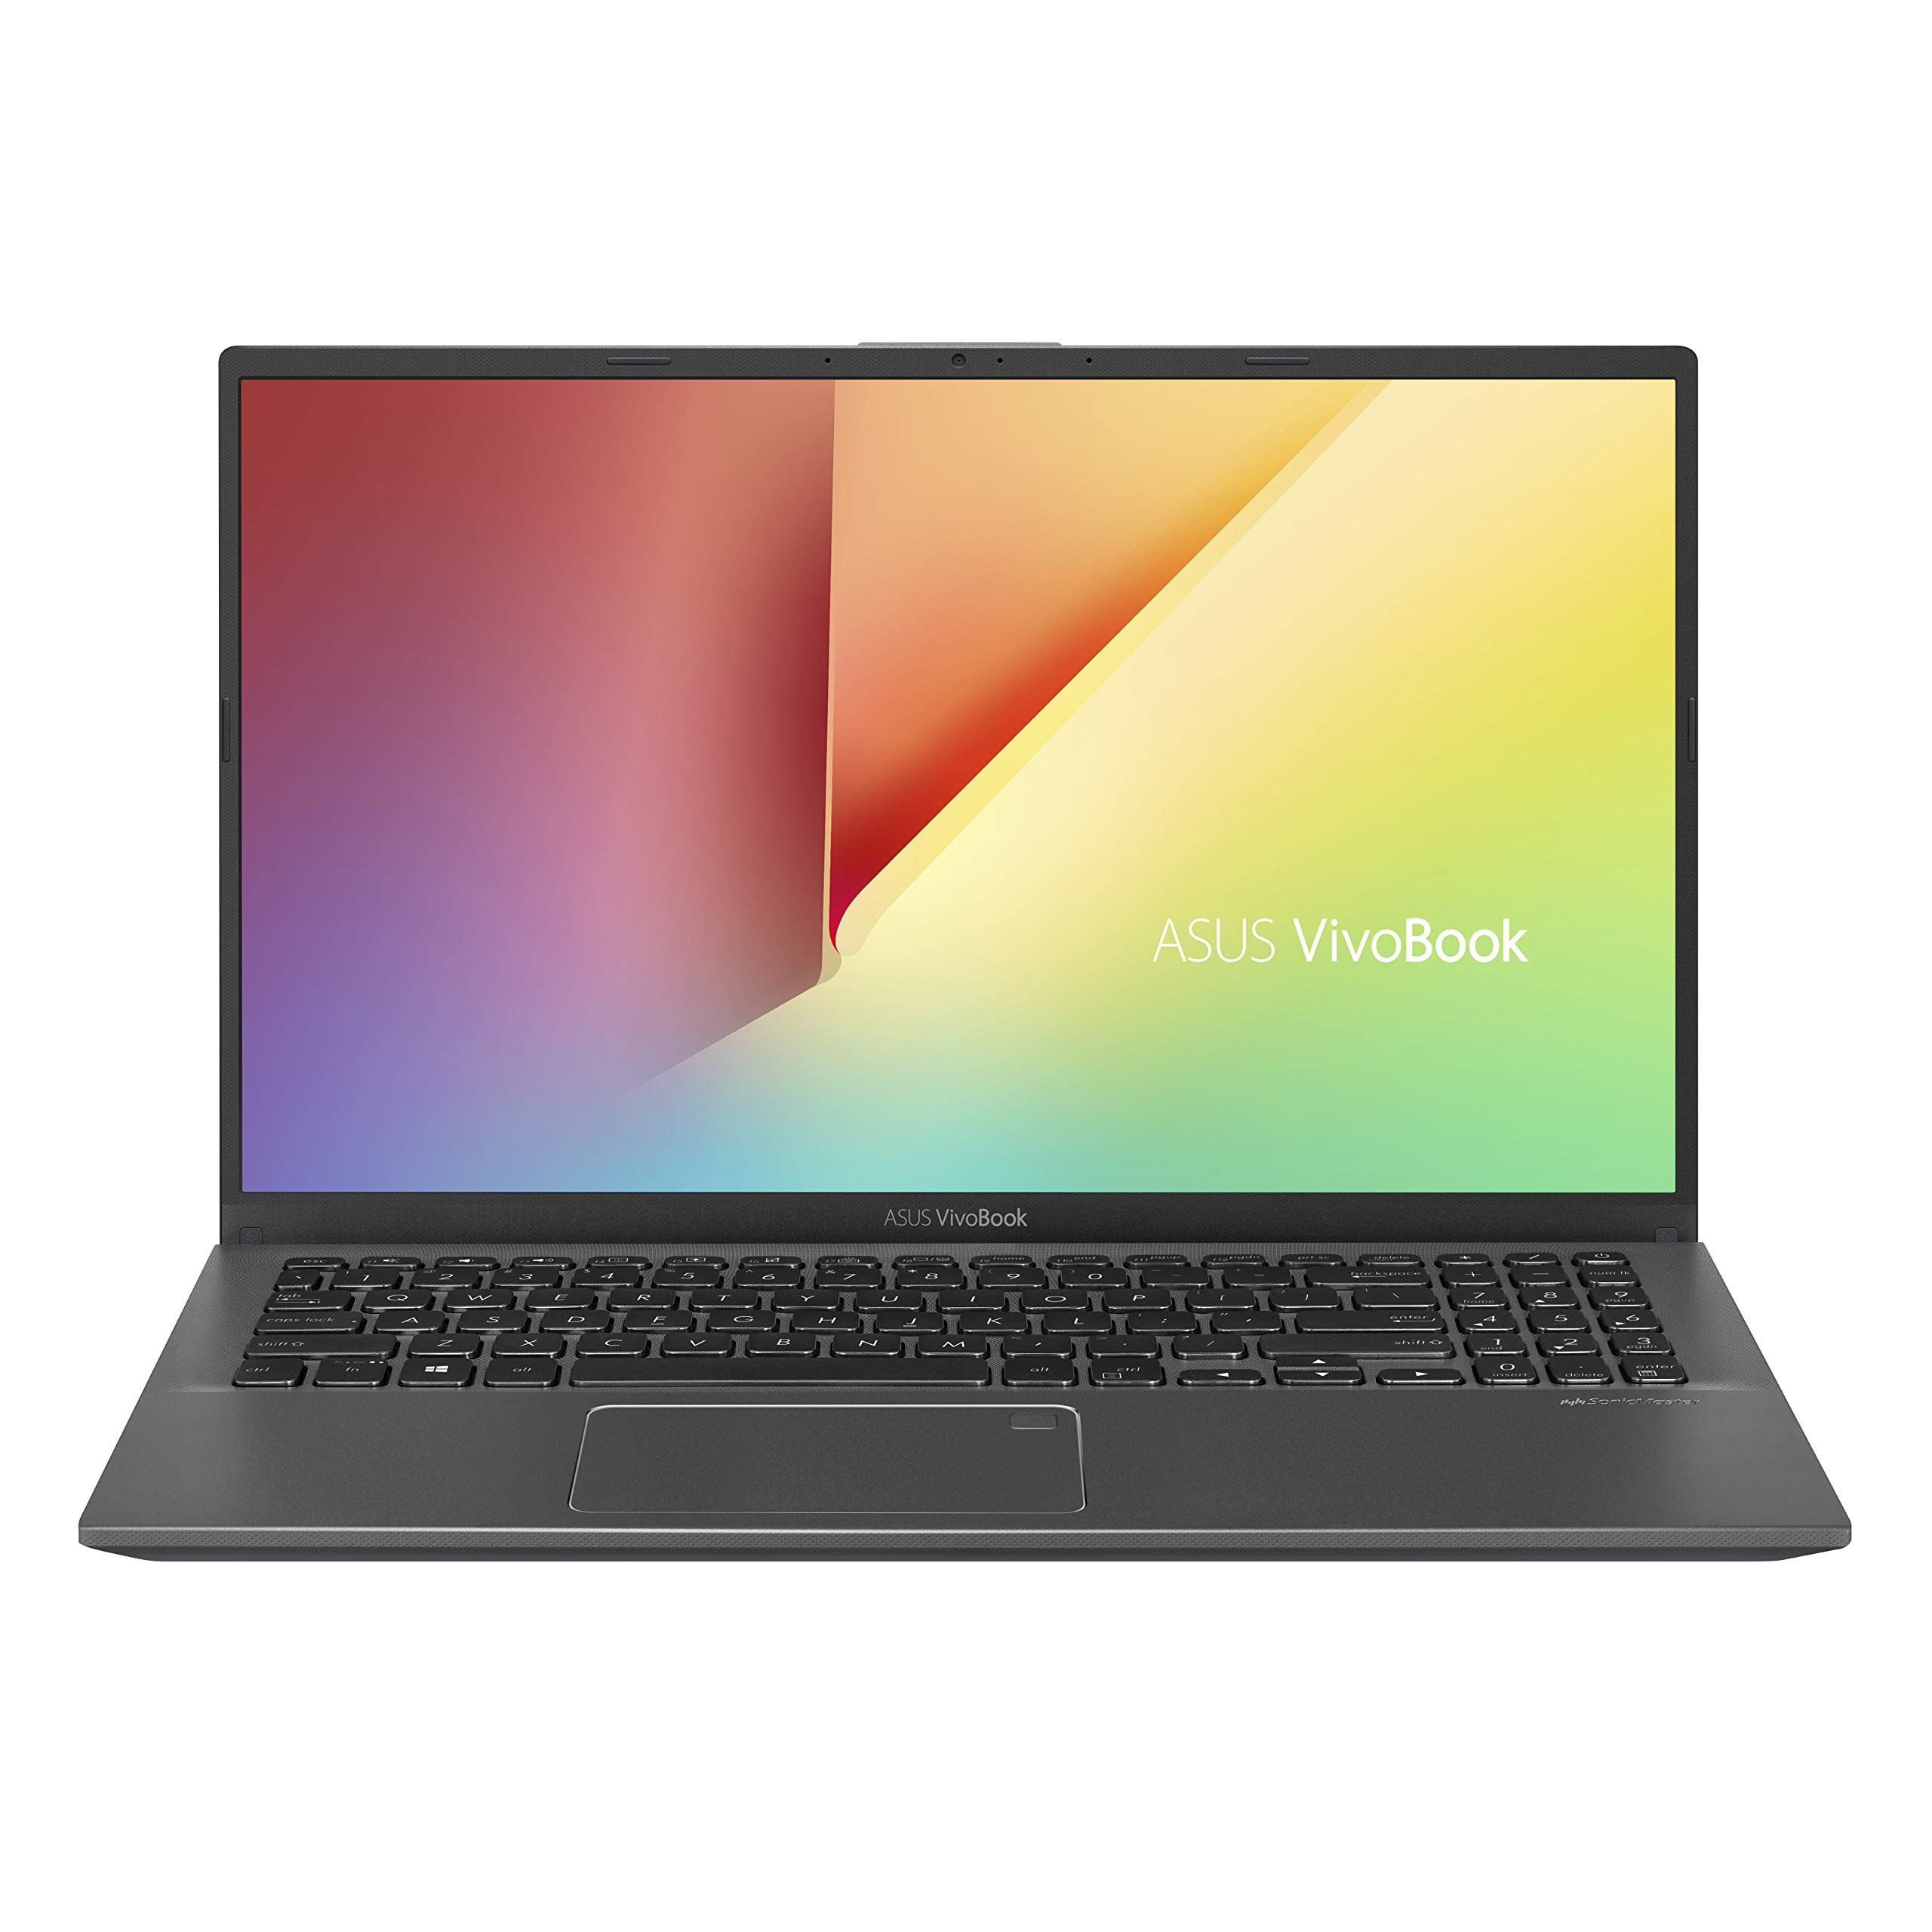 ASUS VivoBook 15 Thin and Light Laptop, 15.6'' FHD, Intel Core i3-8145U CPU, 8GB RAM, 128GB SSD, Windows 10 in S Mode, F512FA-AB34, Slate Gray by ASUS